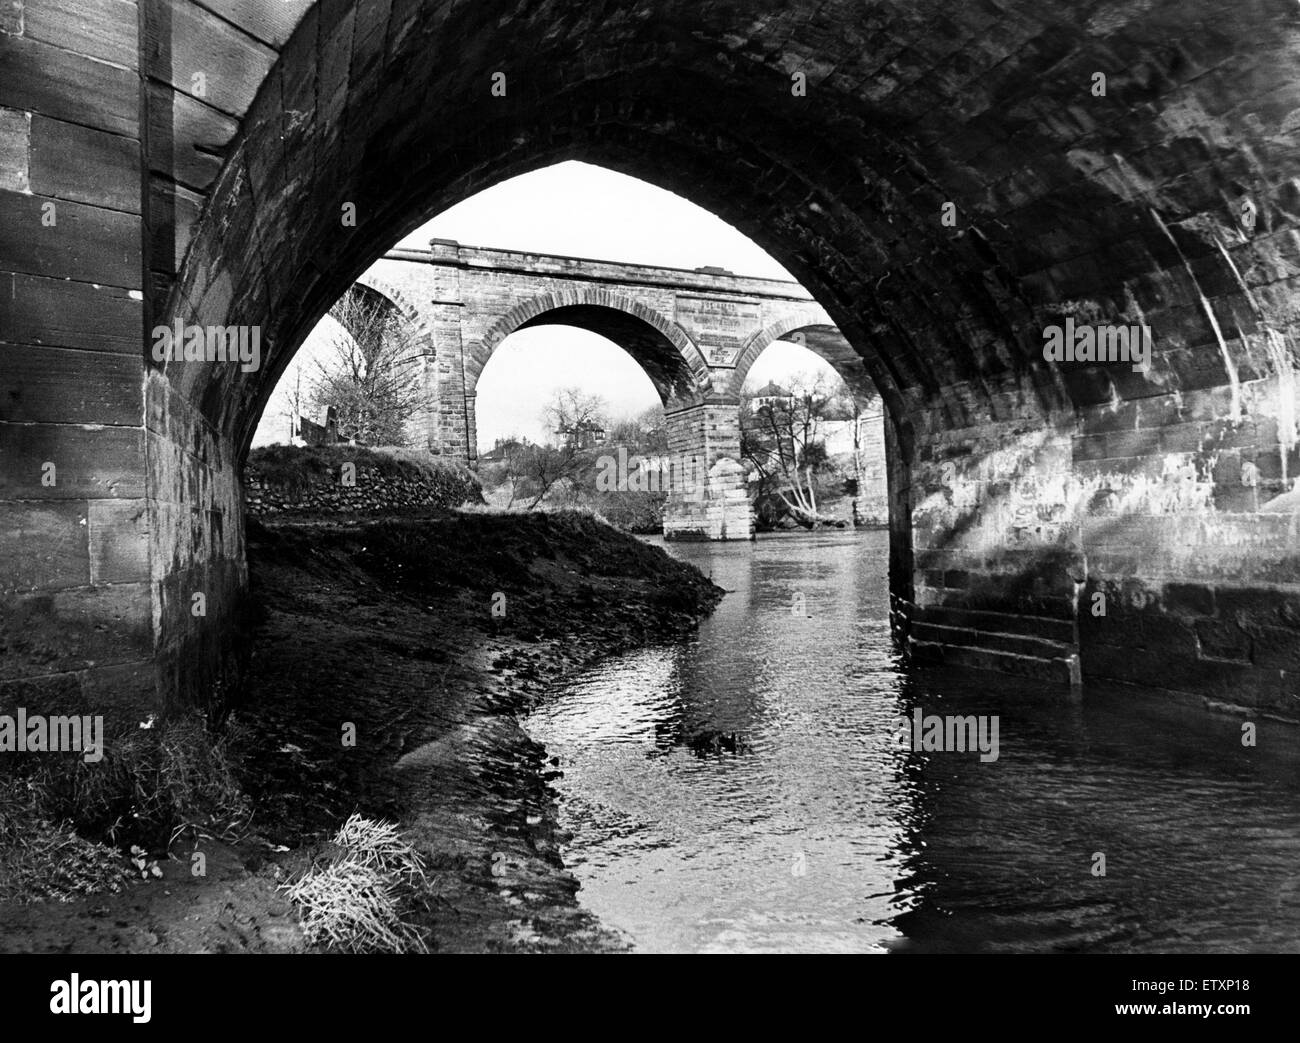 Spanning the Tees, Yarm's two bridges - the railway viaduct in the background and the road bridge showing the - Stock Image